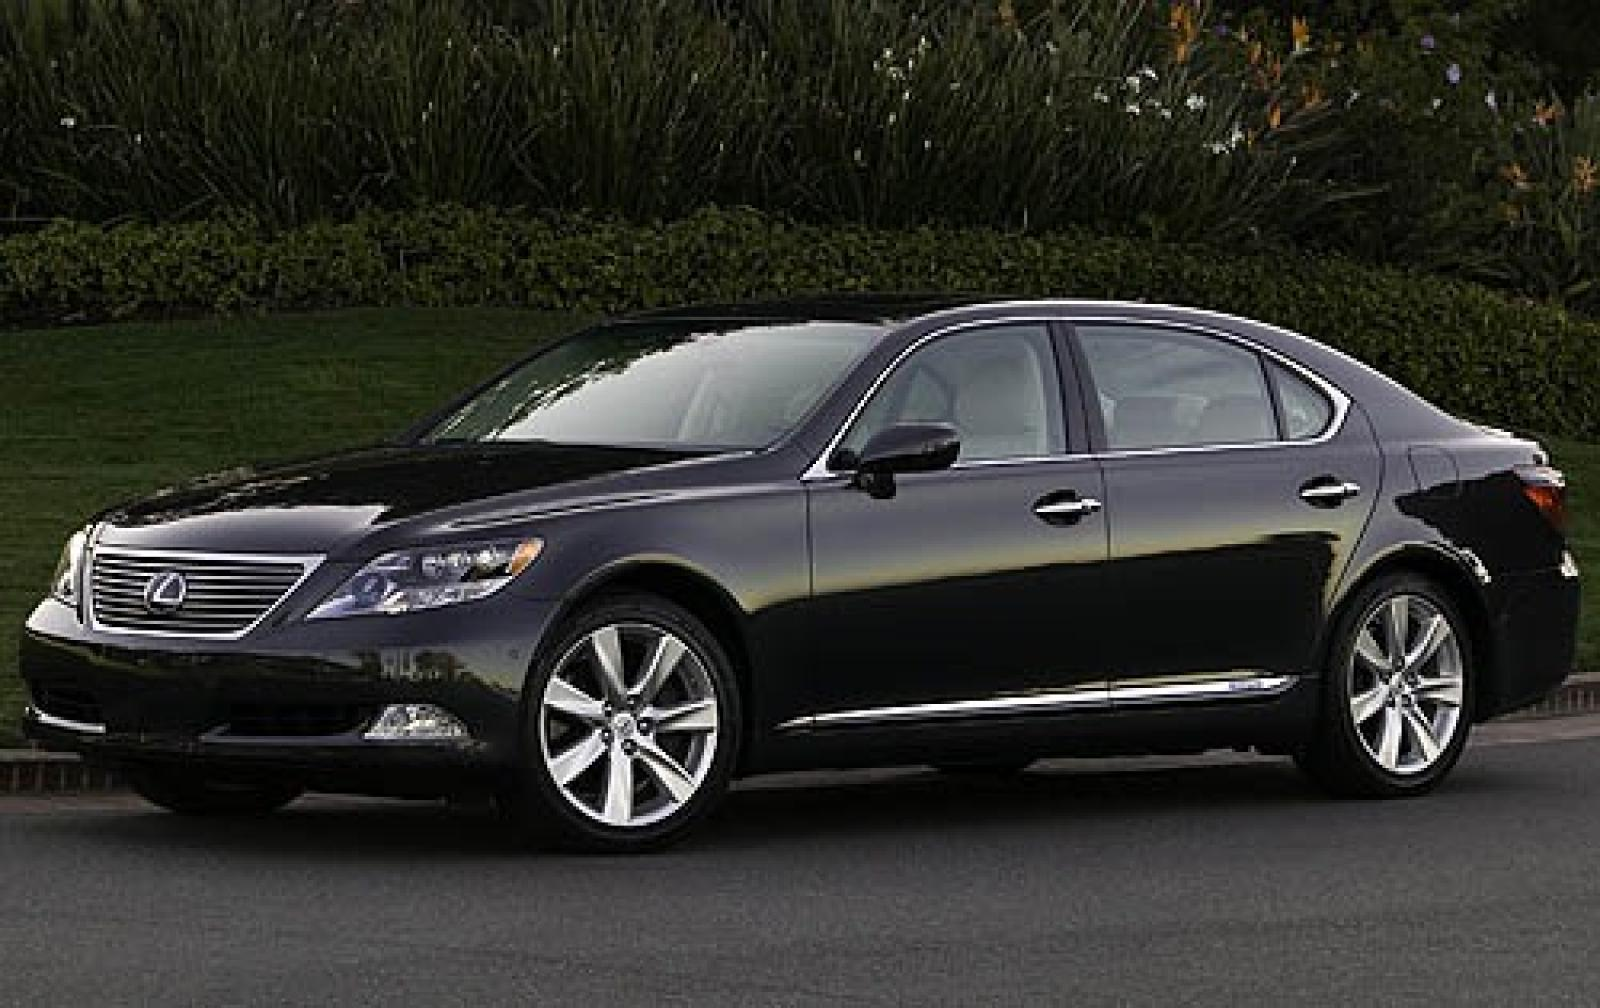 2009 lexus ls 600h l information and photos zombiedrive. Black Bedroom Furniture Sets. Home Design Ideas